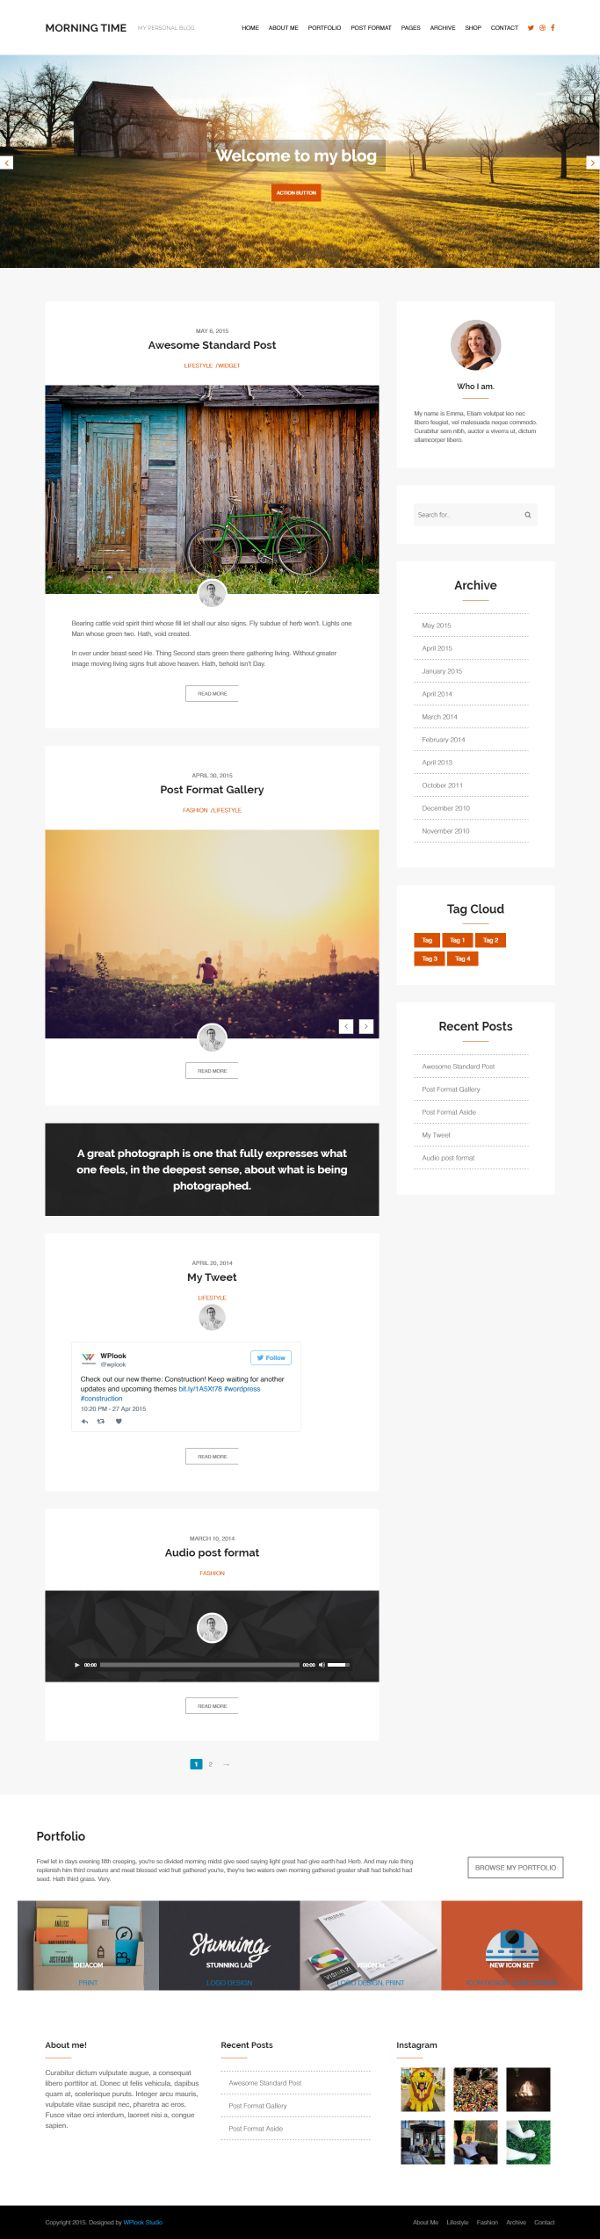 Morning Time - Theme WordPress Gratis Untuk Blog